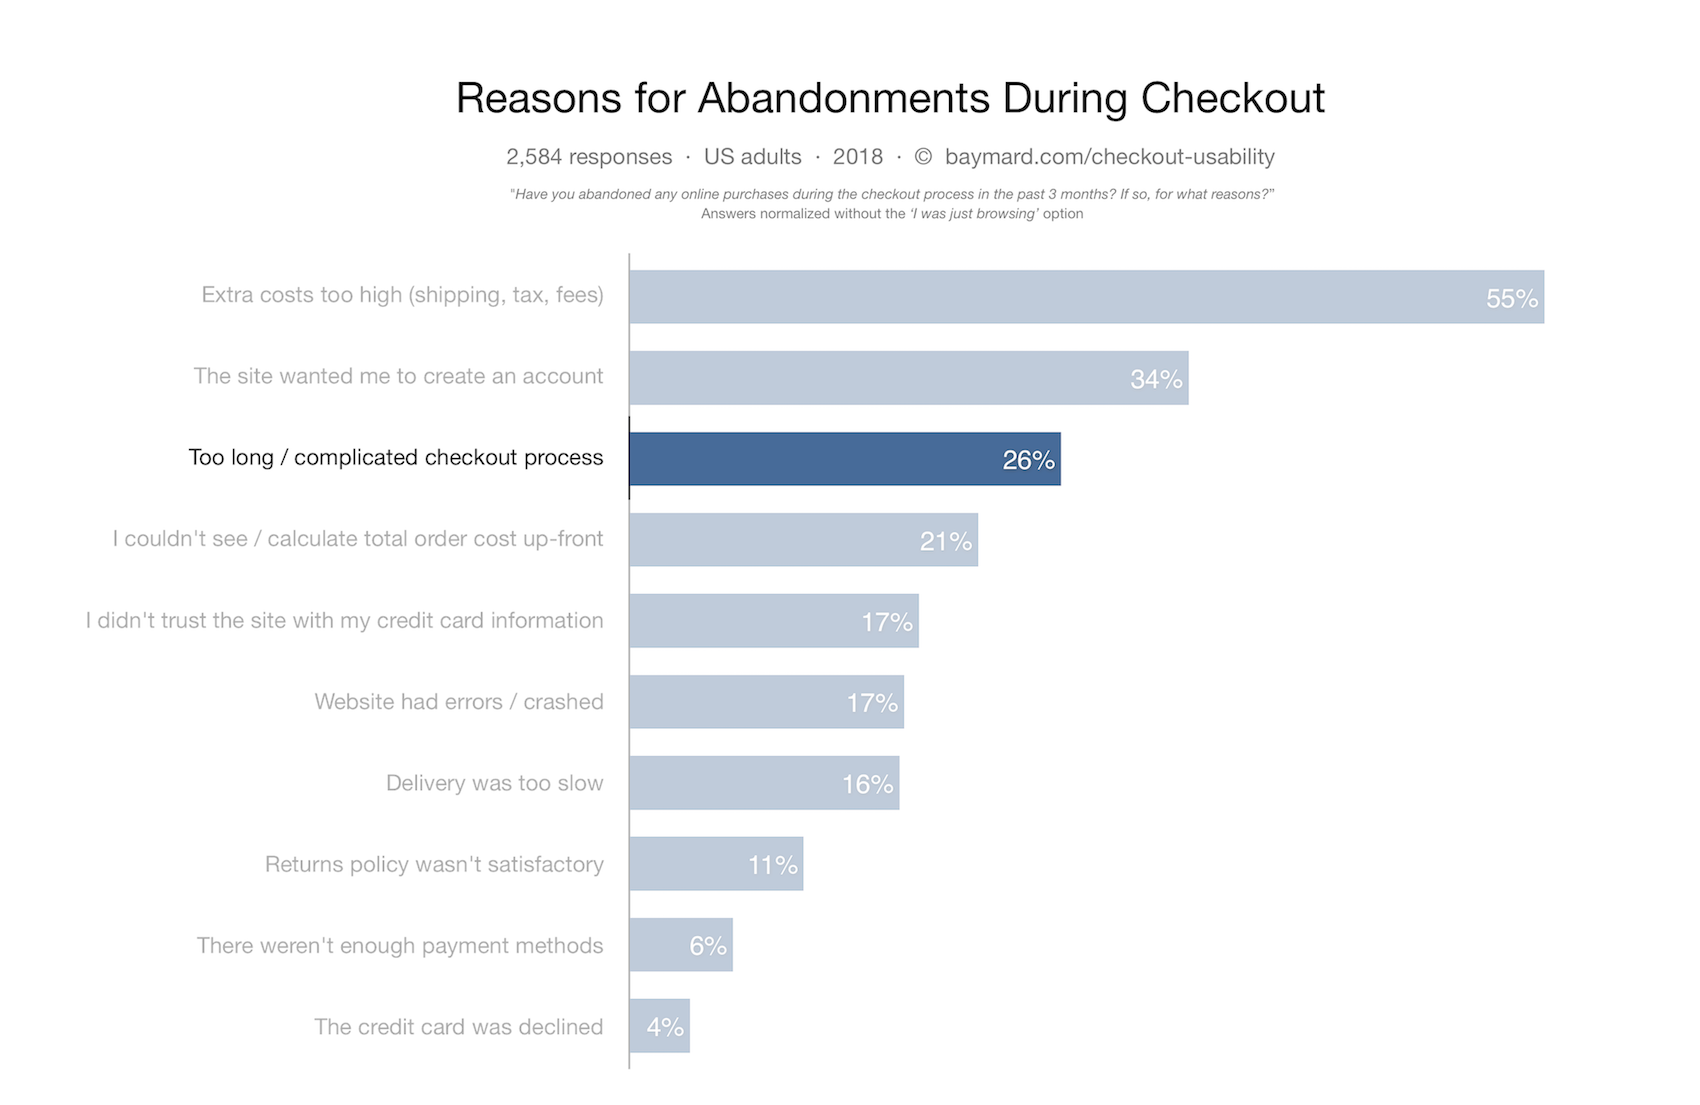 Baymard's research highlights checkout complexity as a key reason for abandonment